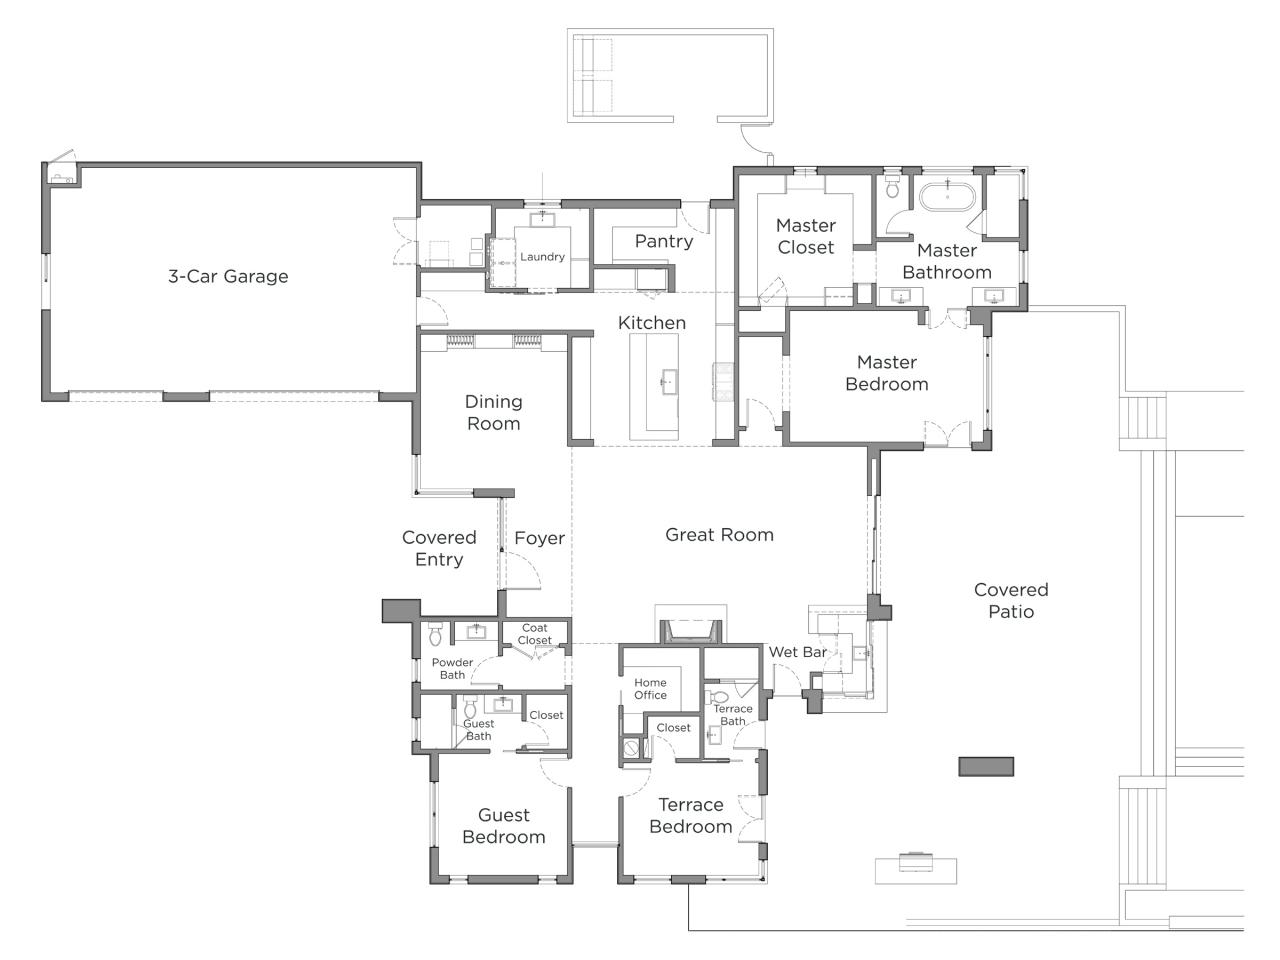 Discover The Floor Plan For HGTV Smart Home 2017 HGTV Smart Home 2017 Behi